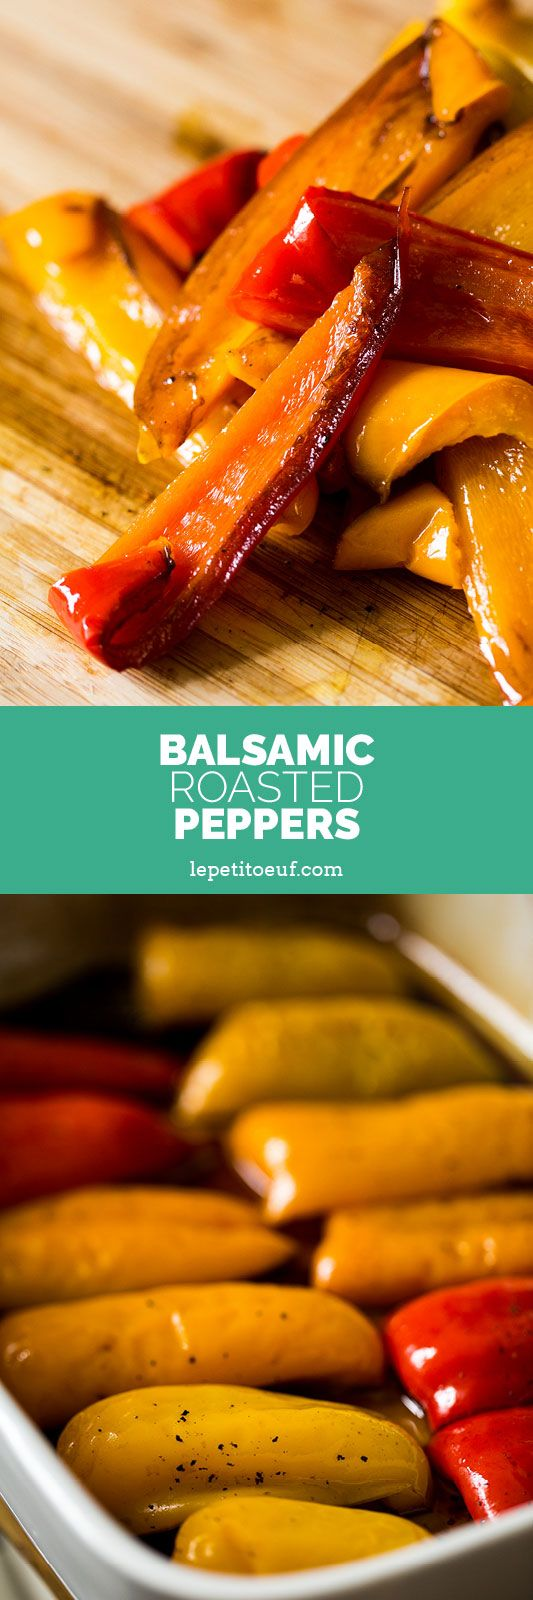 Balsamic roasted peppers are a mediterranean treat made with red, orange, green or yellow peppers, gently braised in the oven with garlic, balsamic vinegar and extra virgin olive oil until they become soft, sweet, richly flavoured slithers of pepper. Perfect for a salad, a picnic or to be served alongside cheese, charcuterie and olives as antipasti. Alternatively make ahead and store them in the fridge until you need them.